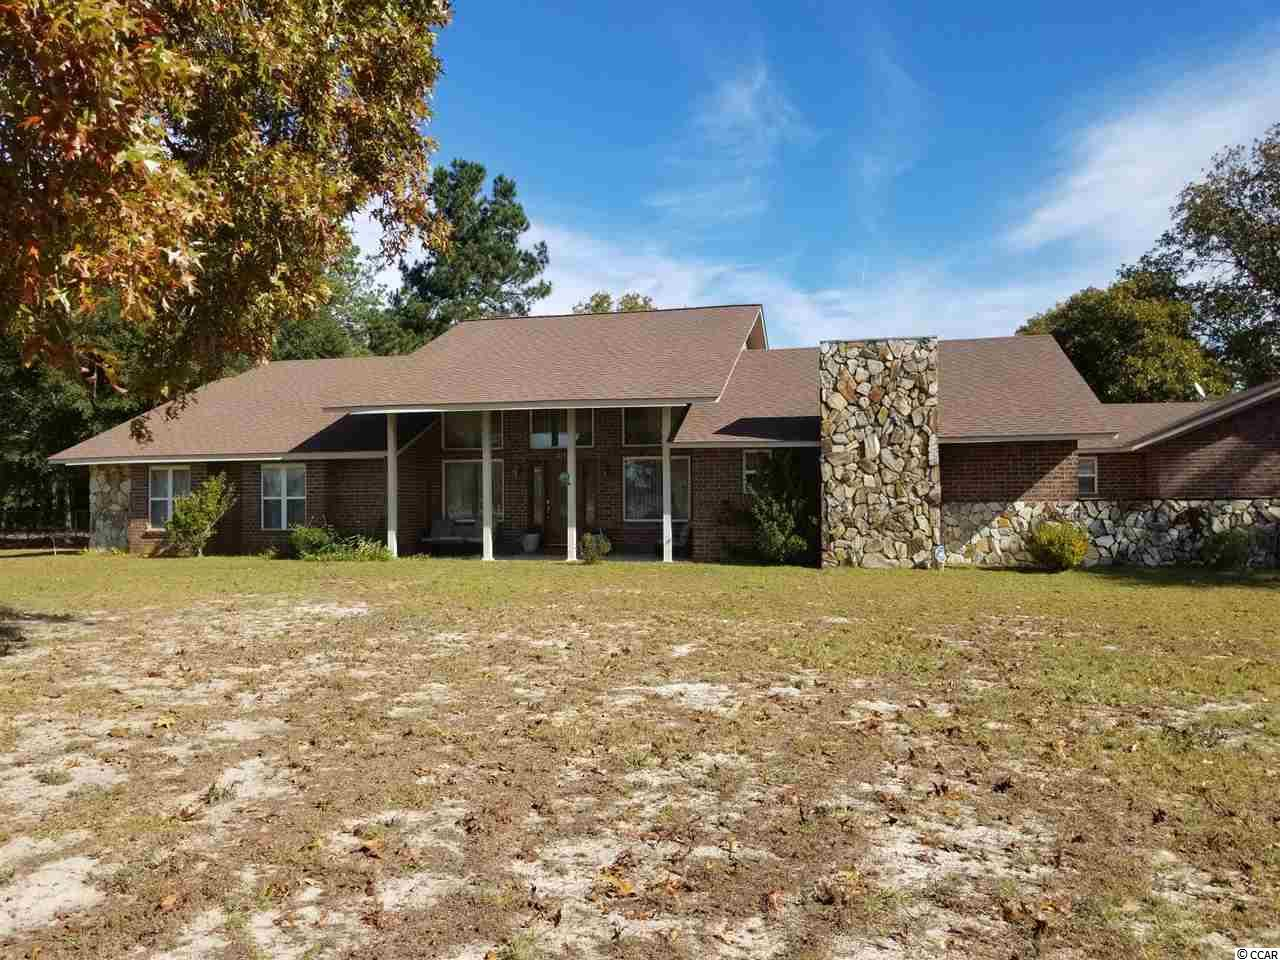 Single Family Home for Sale at 214 Frank Jones Road 214 Frank Jones Road Gresham, South Carolina 29546 United States